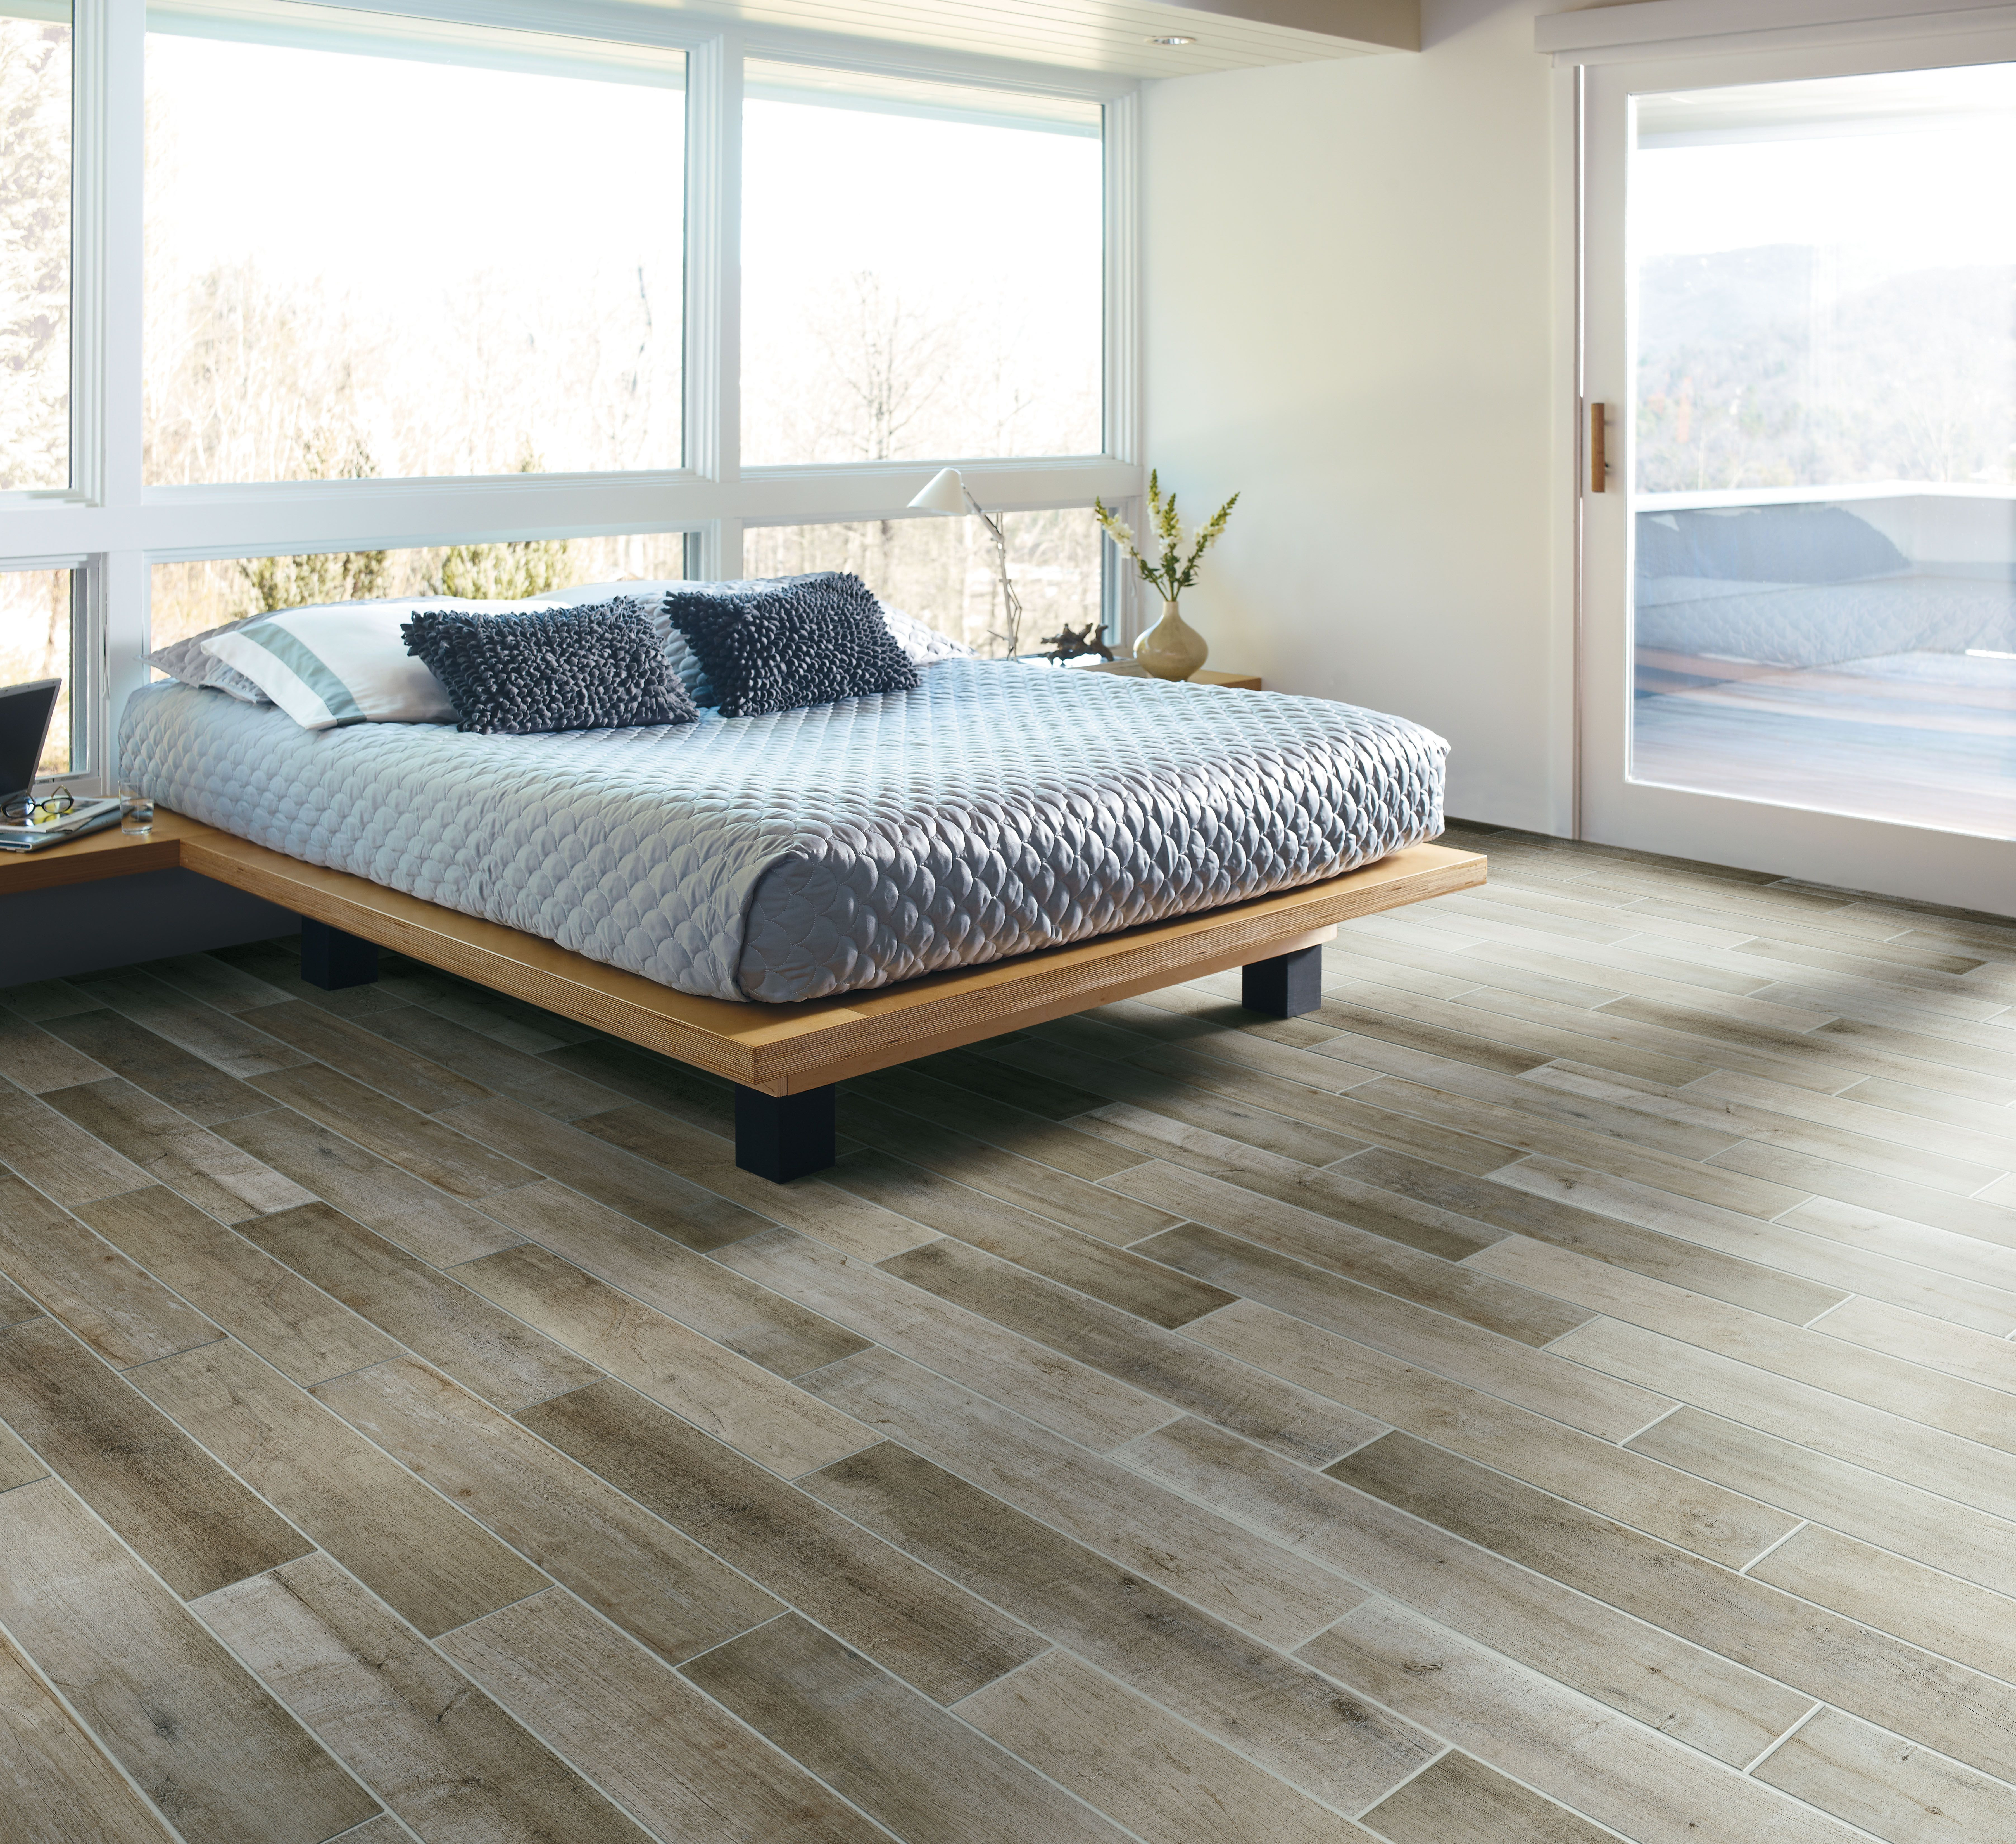 11 Recommended Hardwood Floor Refinishing Flemington Nj 2021 free download hardwood floor refinishing flemington nj of immaculate blue mattress on low profile wooden master bedding on in immaculate blue mattress on low profile wooden master bedding on porcelain woo